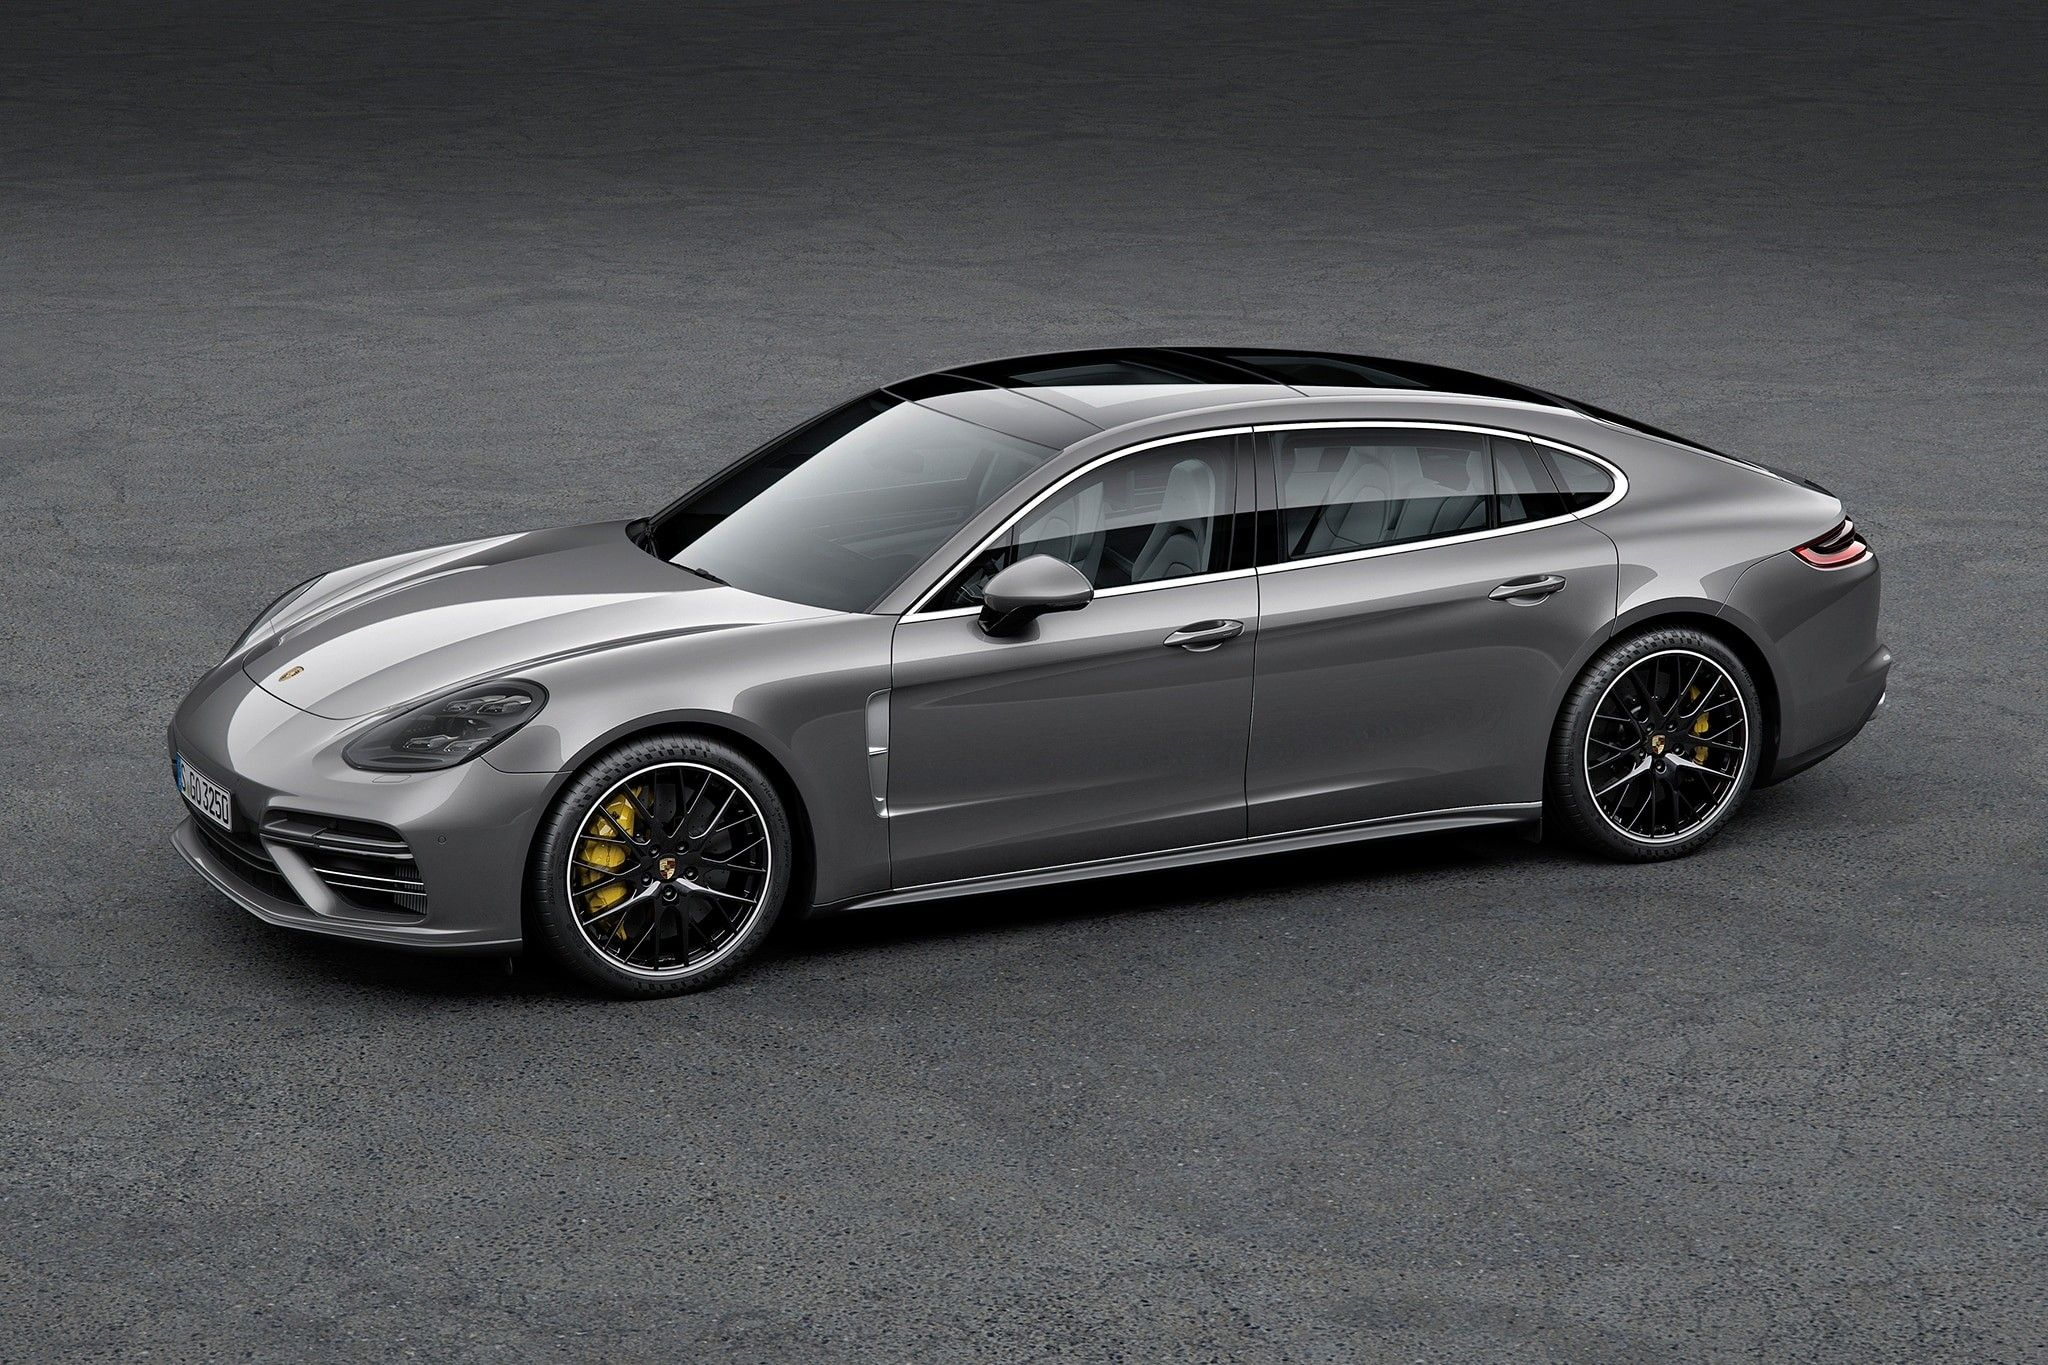 2018 Porsche Panamera Turbo Executive Picture Release Date And Review